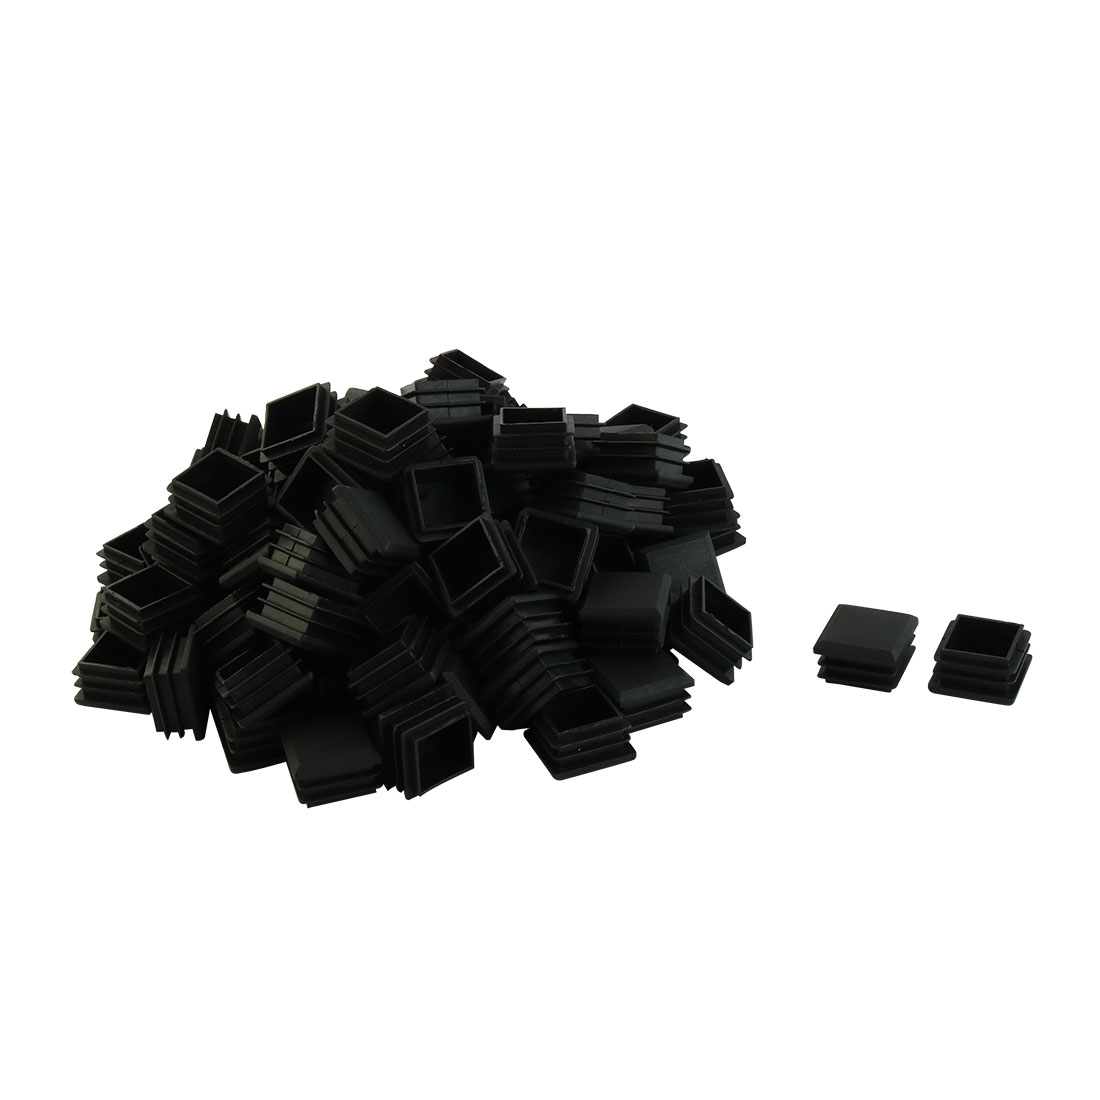 Home Plastic Square Table Feet End Cap Tube Insert Black 25mm x 25mm 100 Pcs